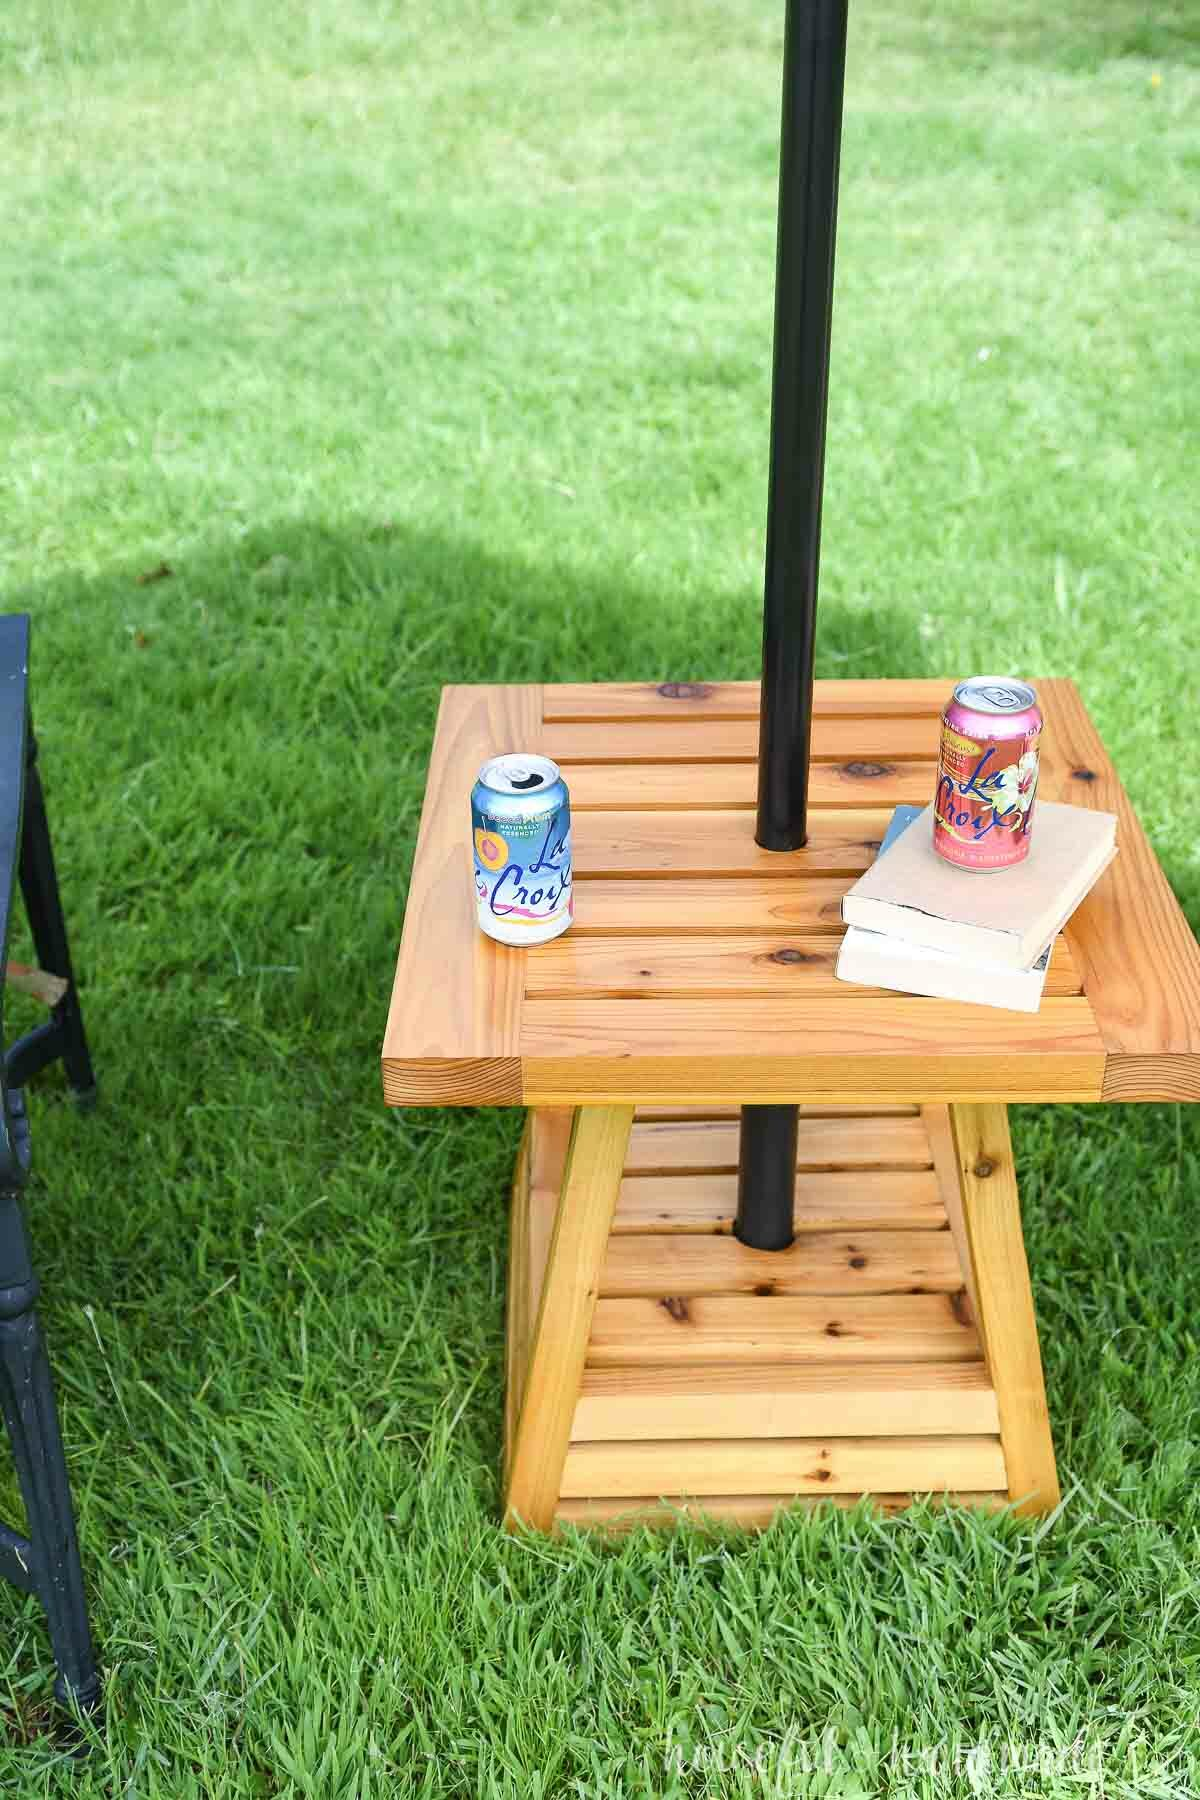 Looking down onto the top of the outdoor side table with a pyramid base and books and drinks on top of it.